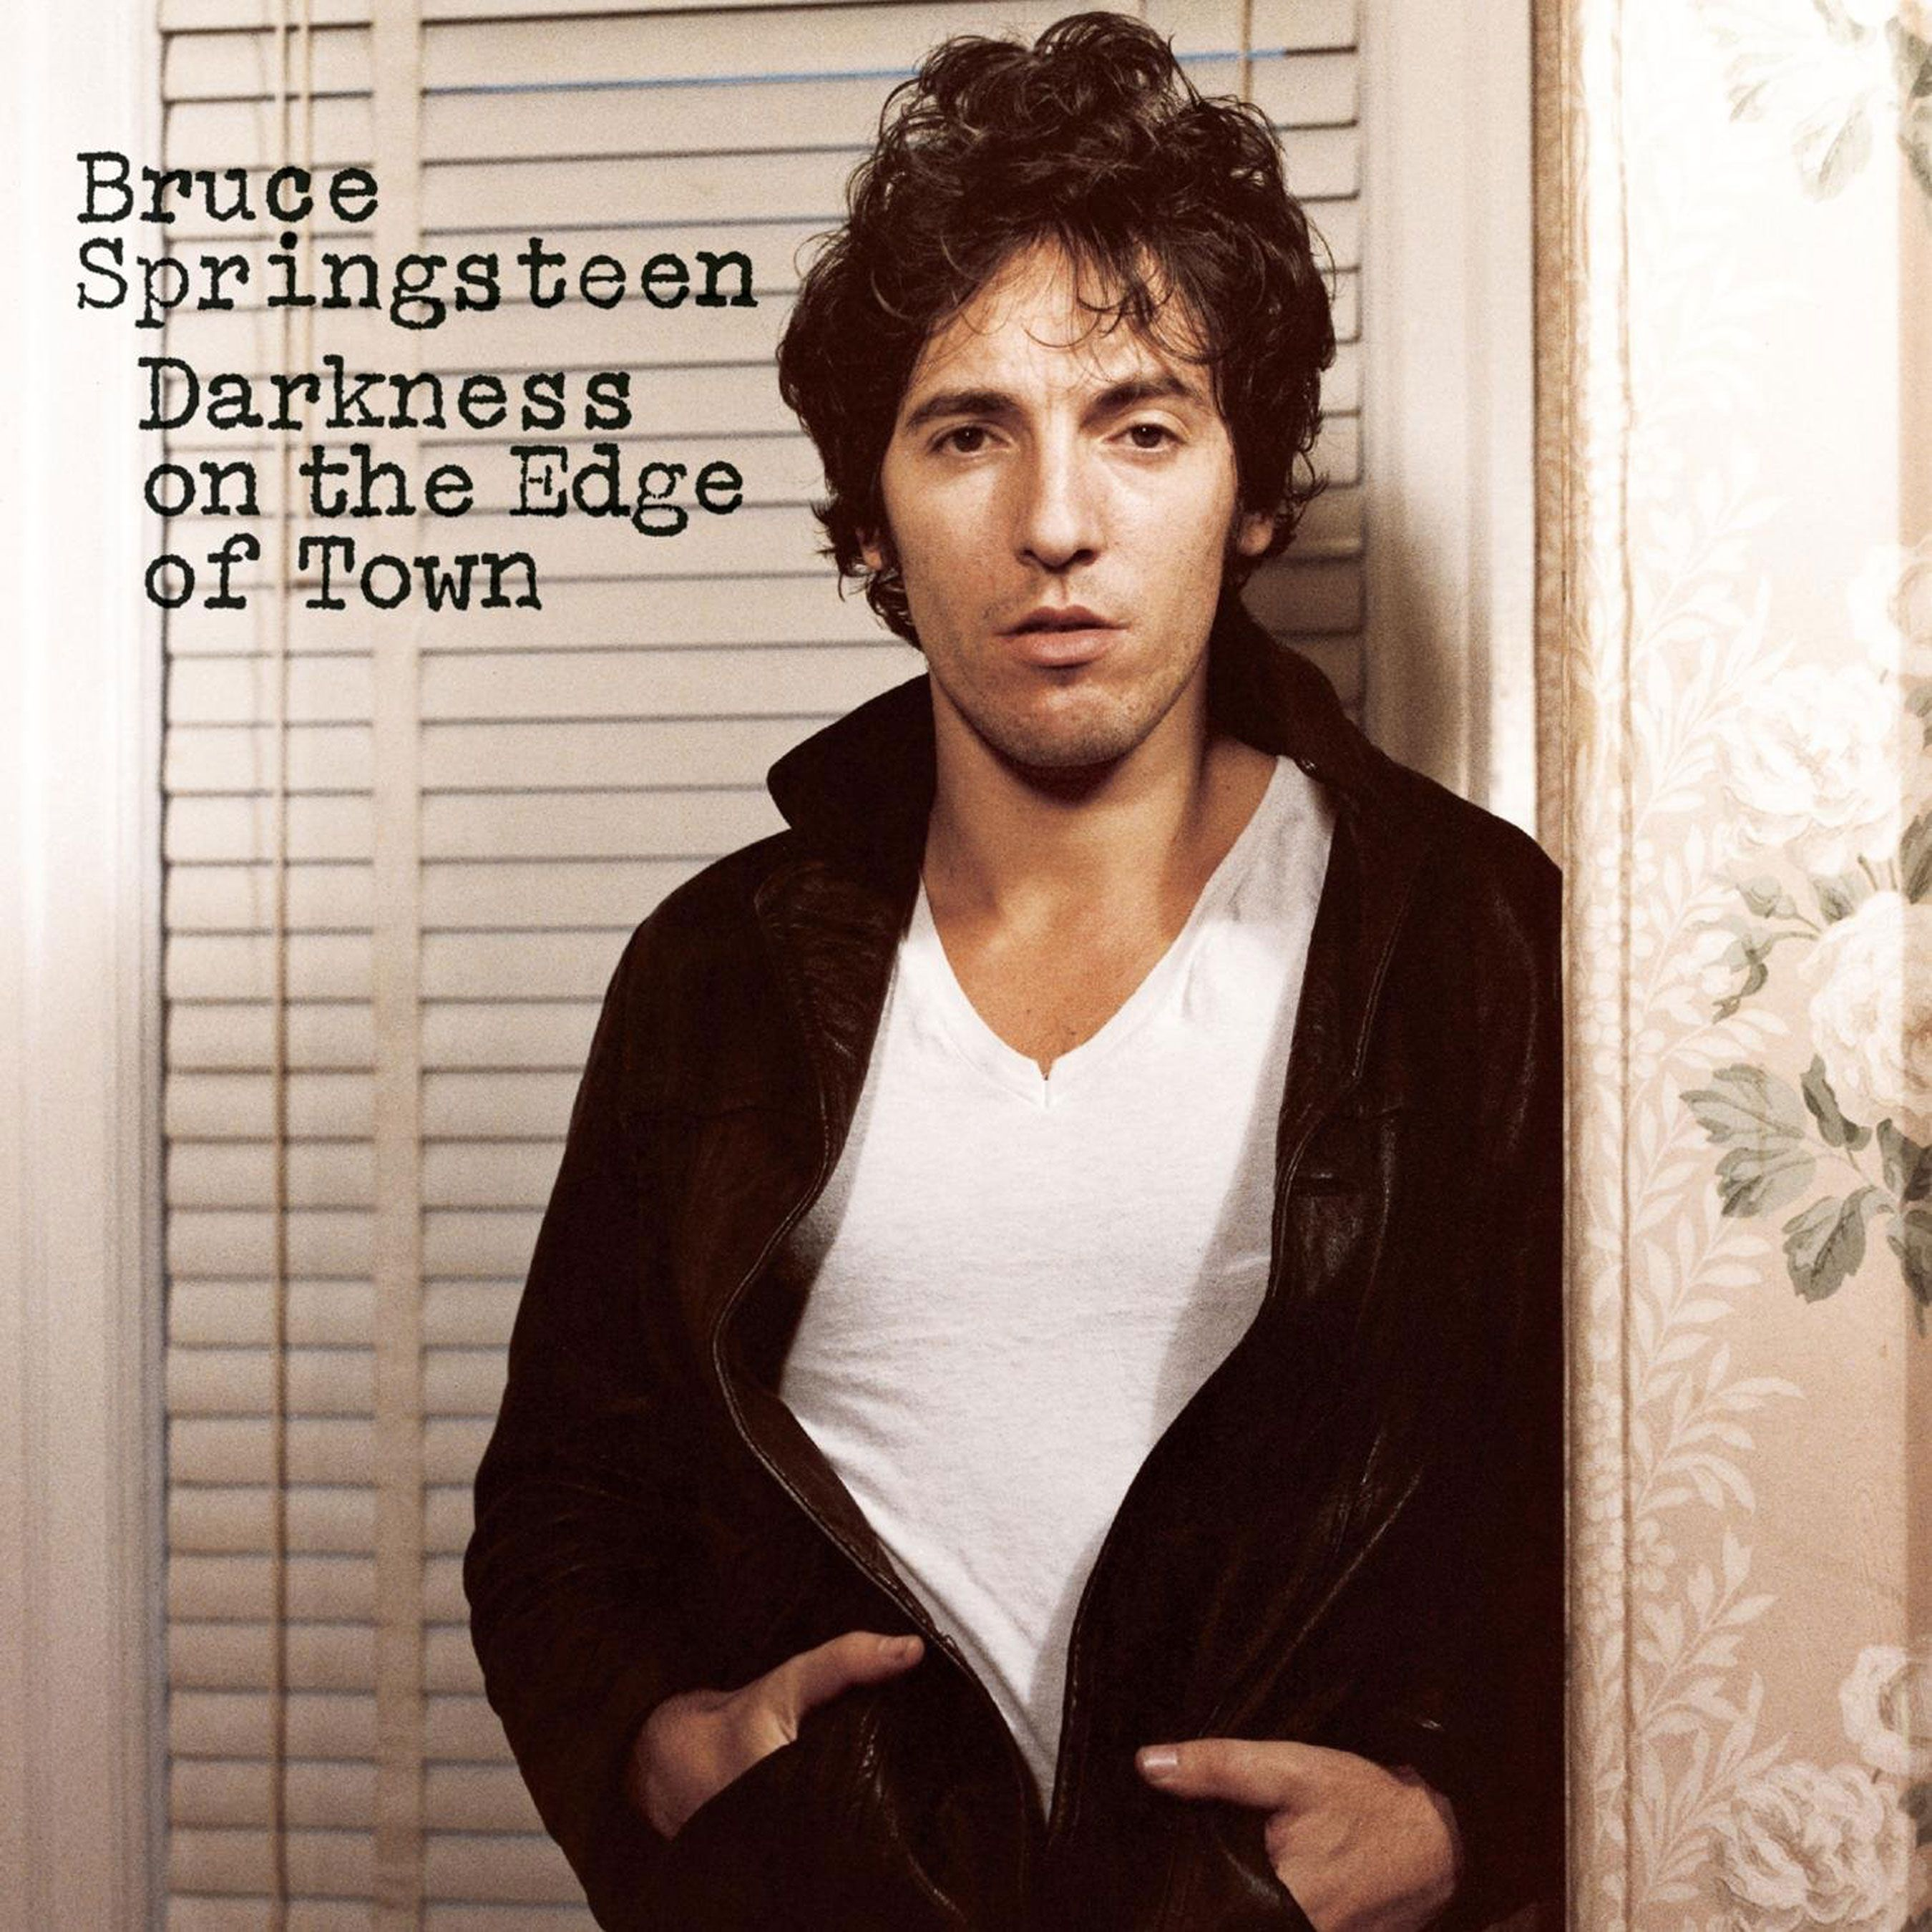 Here's how Springsteen's 'Darkness on the Edge of Town